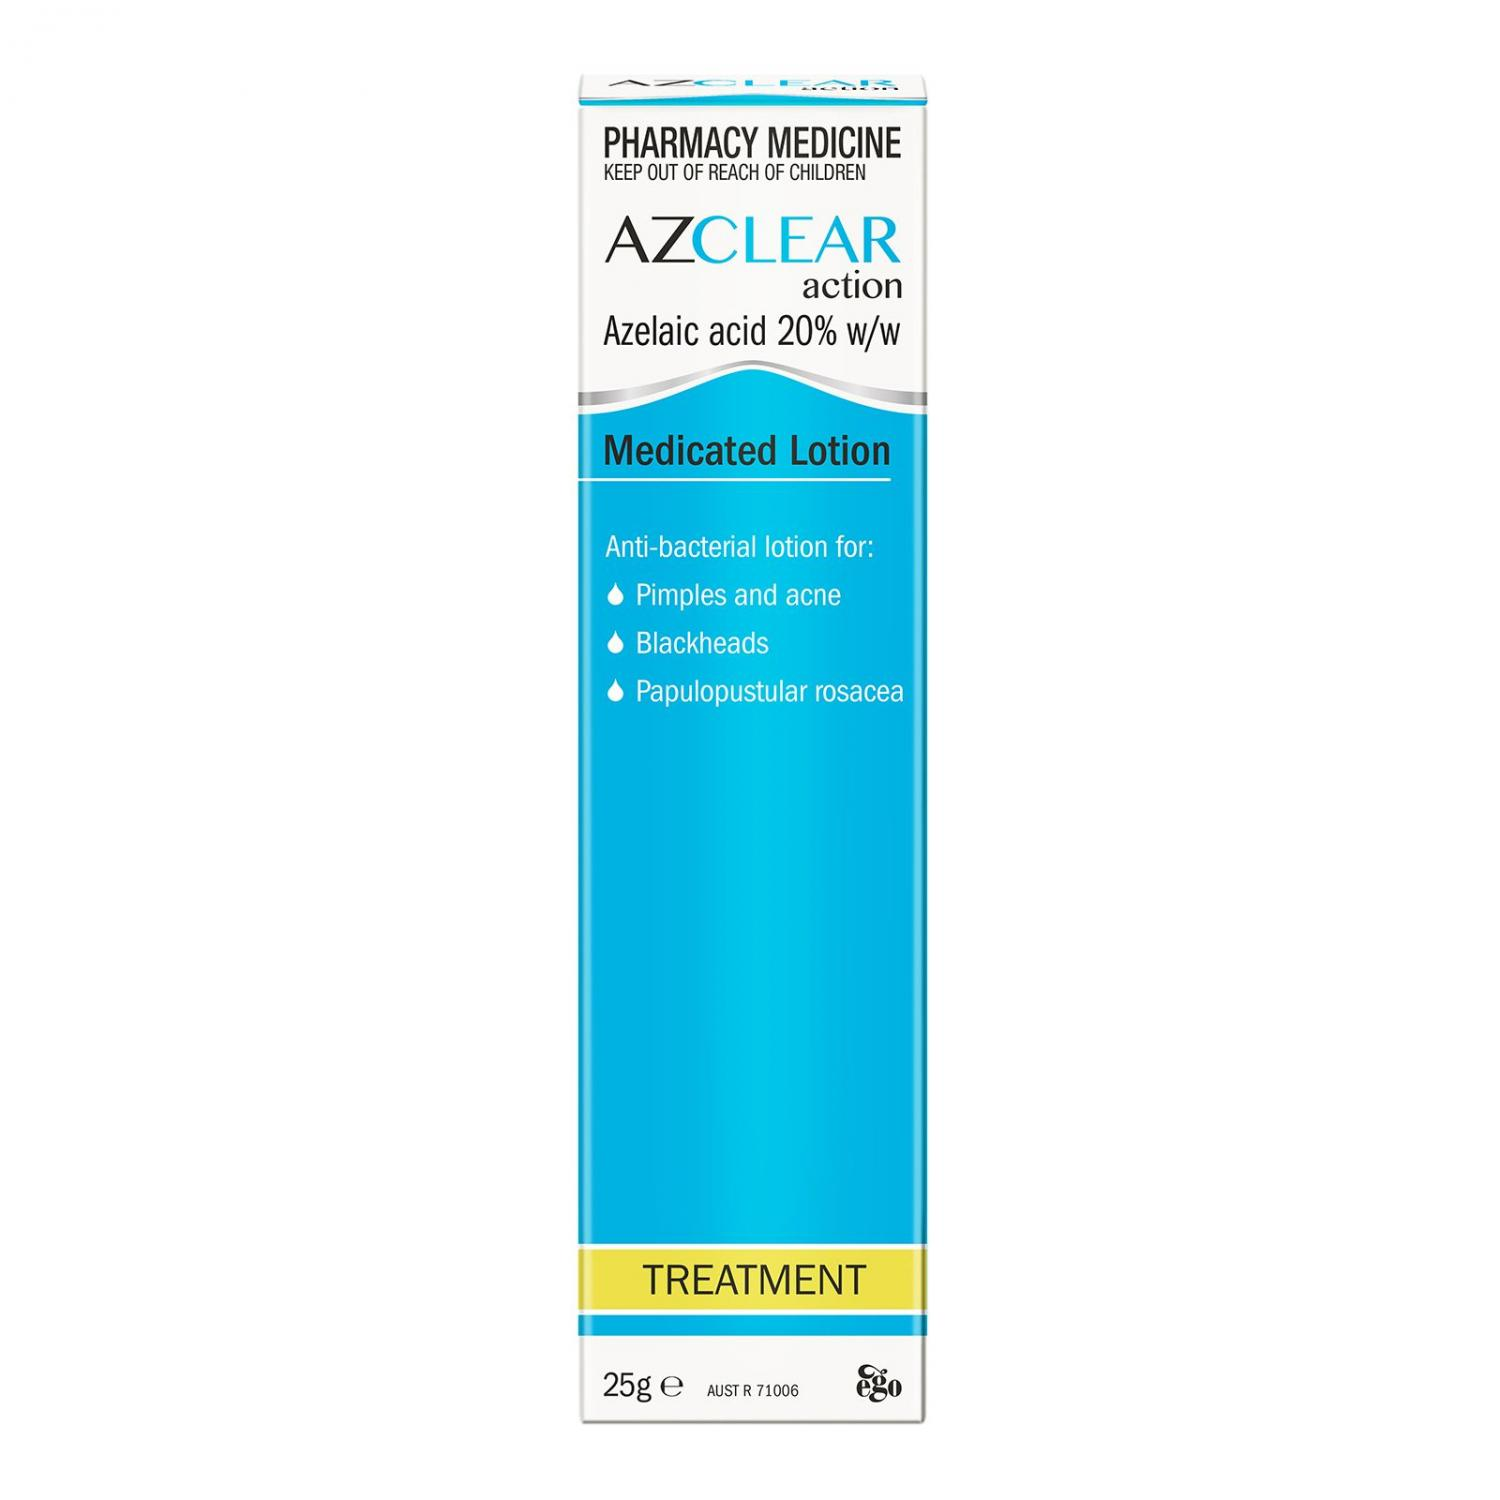 Thumbnail for Azclear Action Medicated Lotion 25g